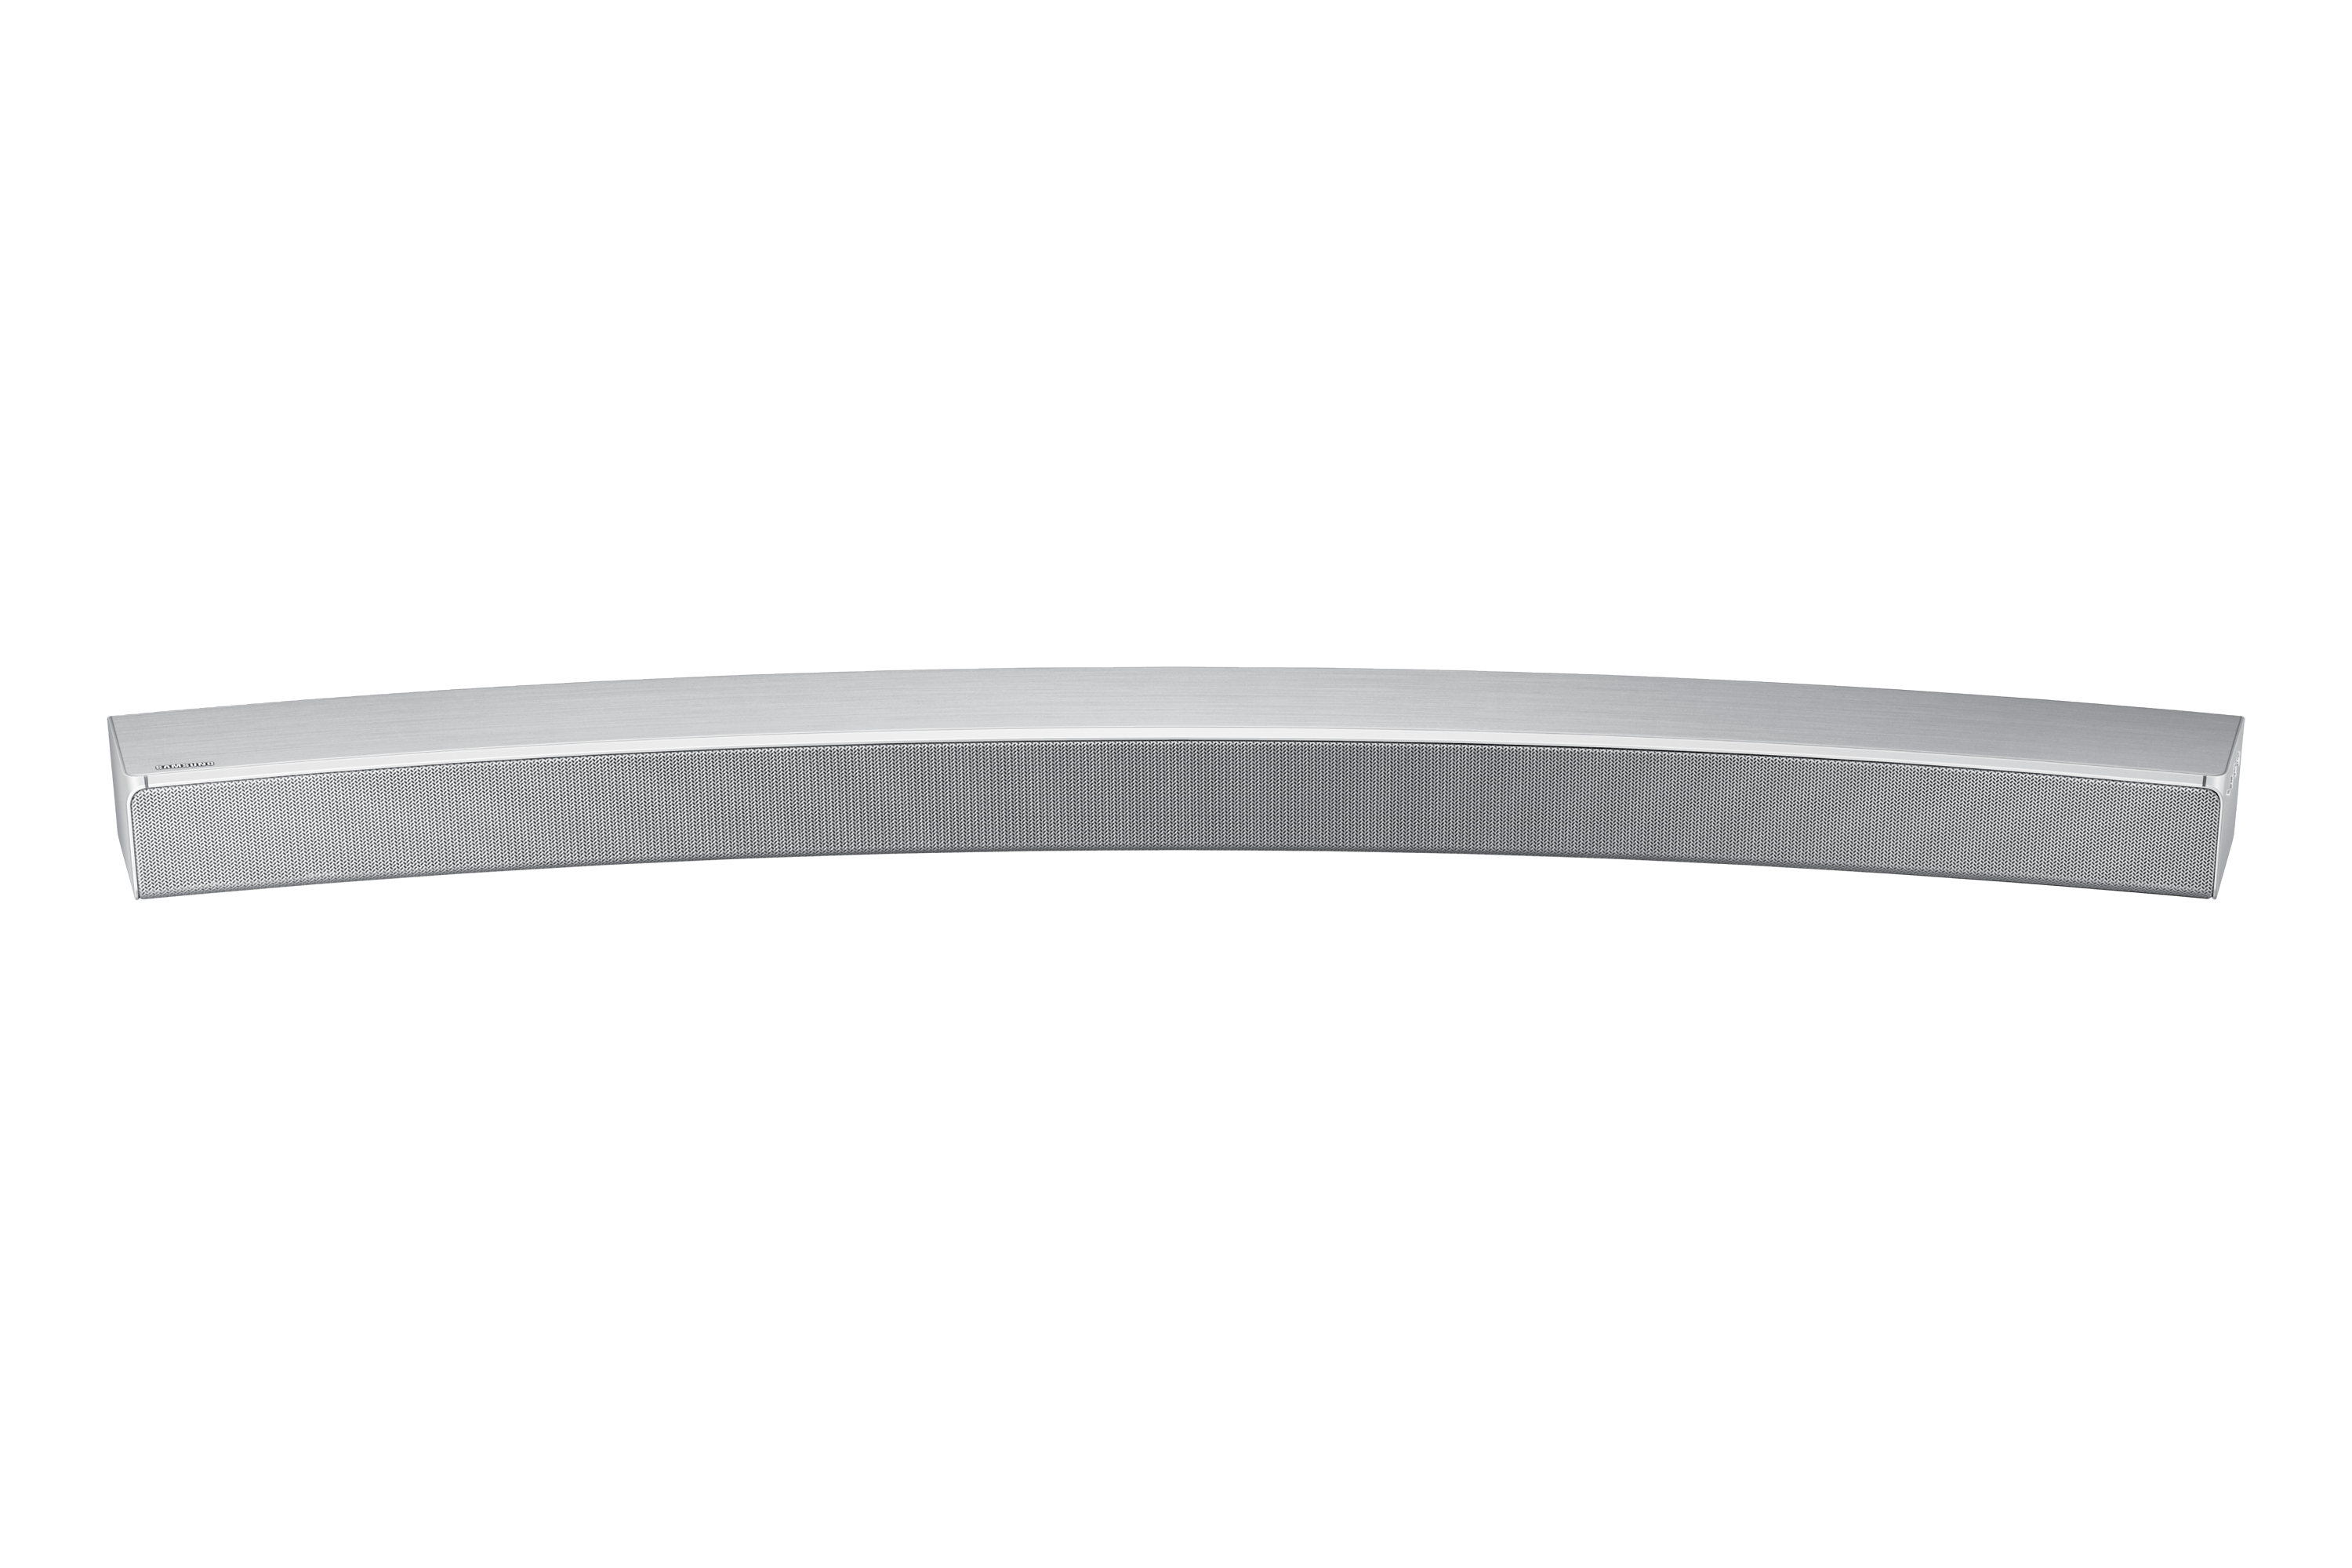 3 Ch Curved Soundbar HW-MS6501